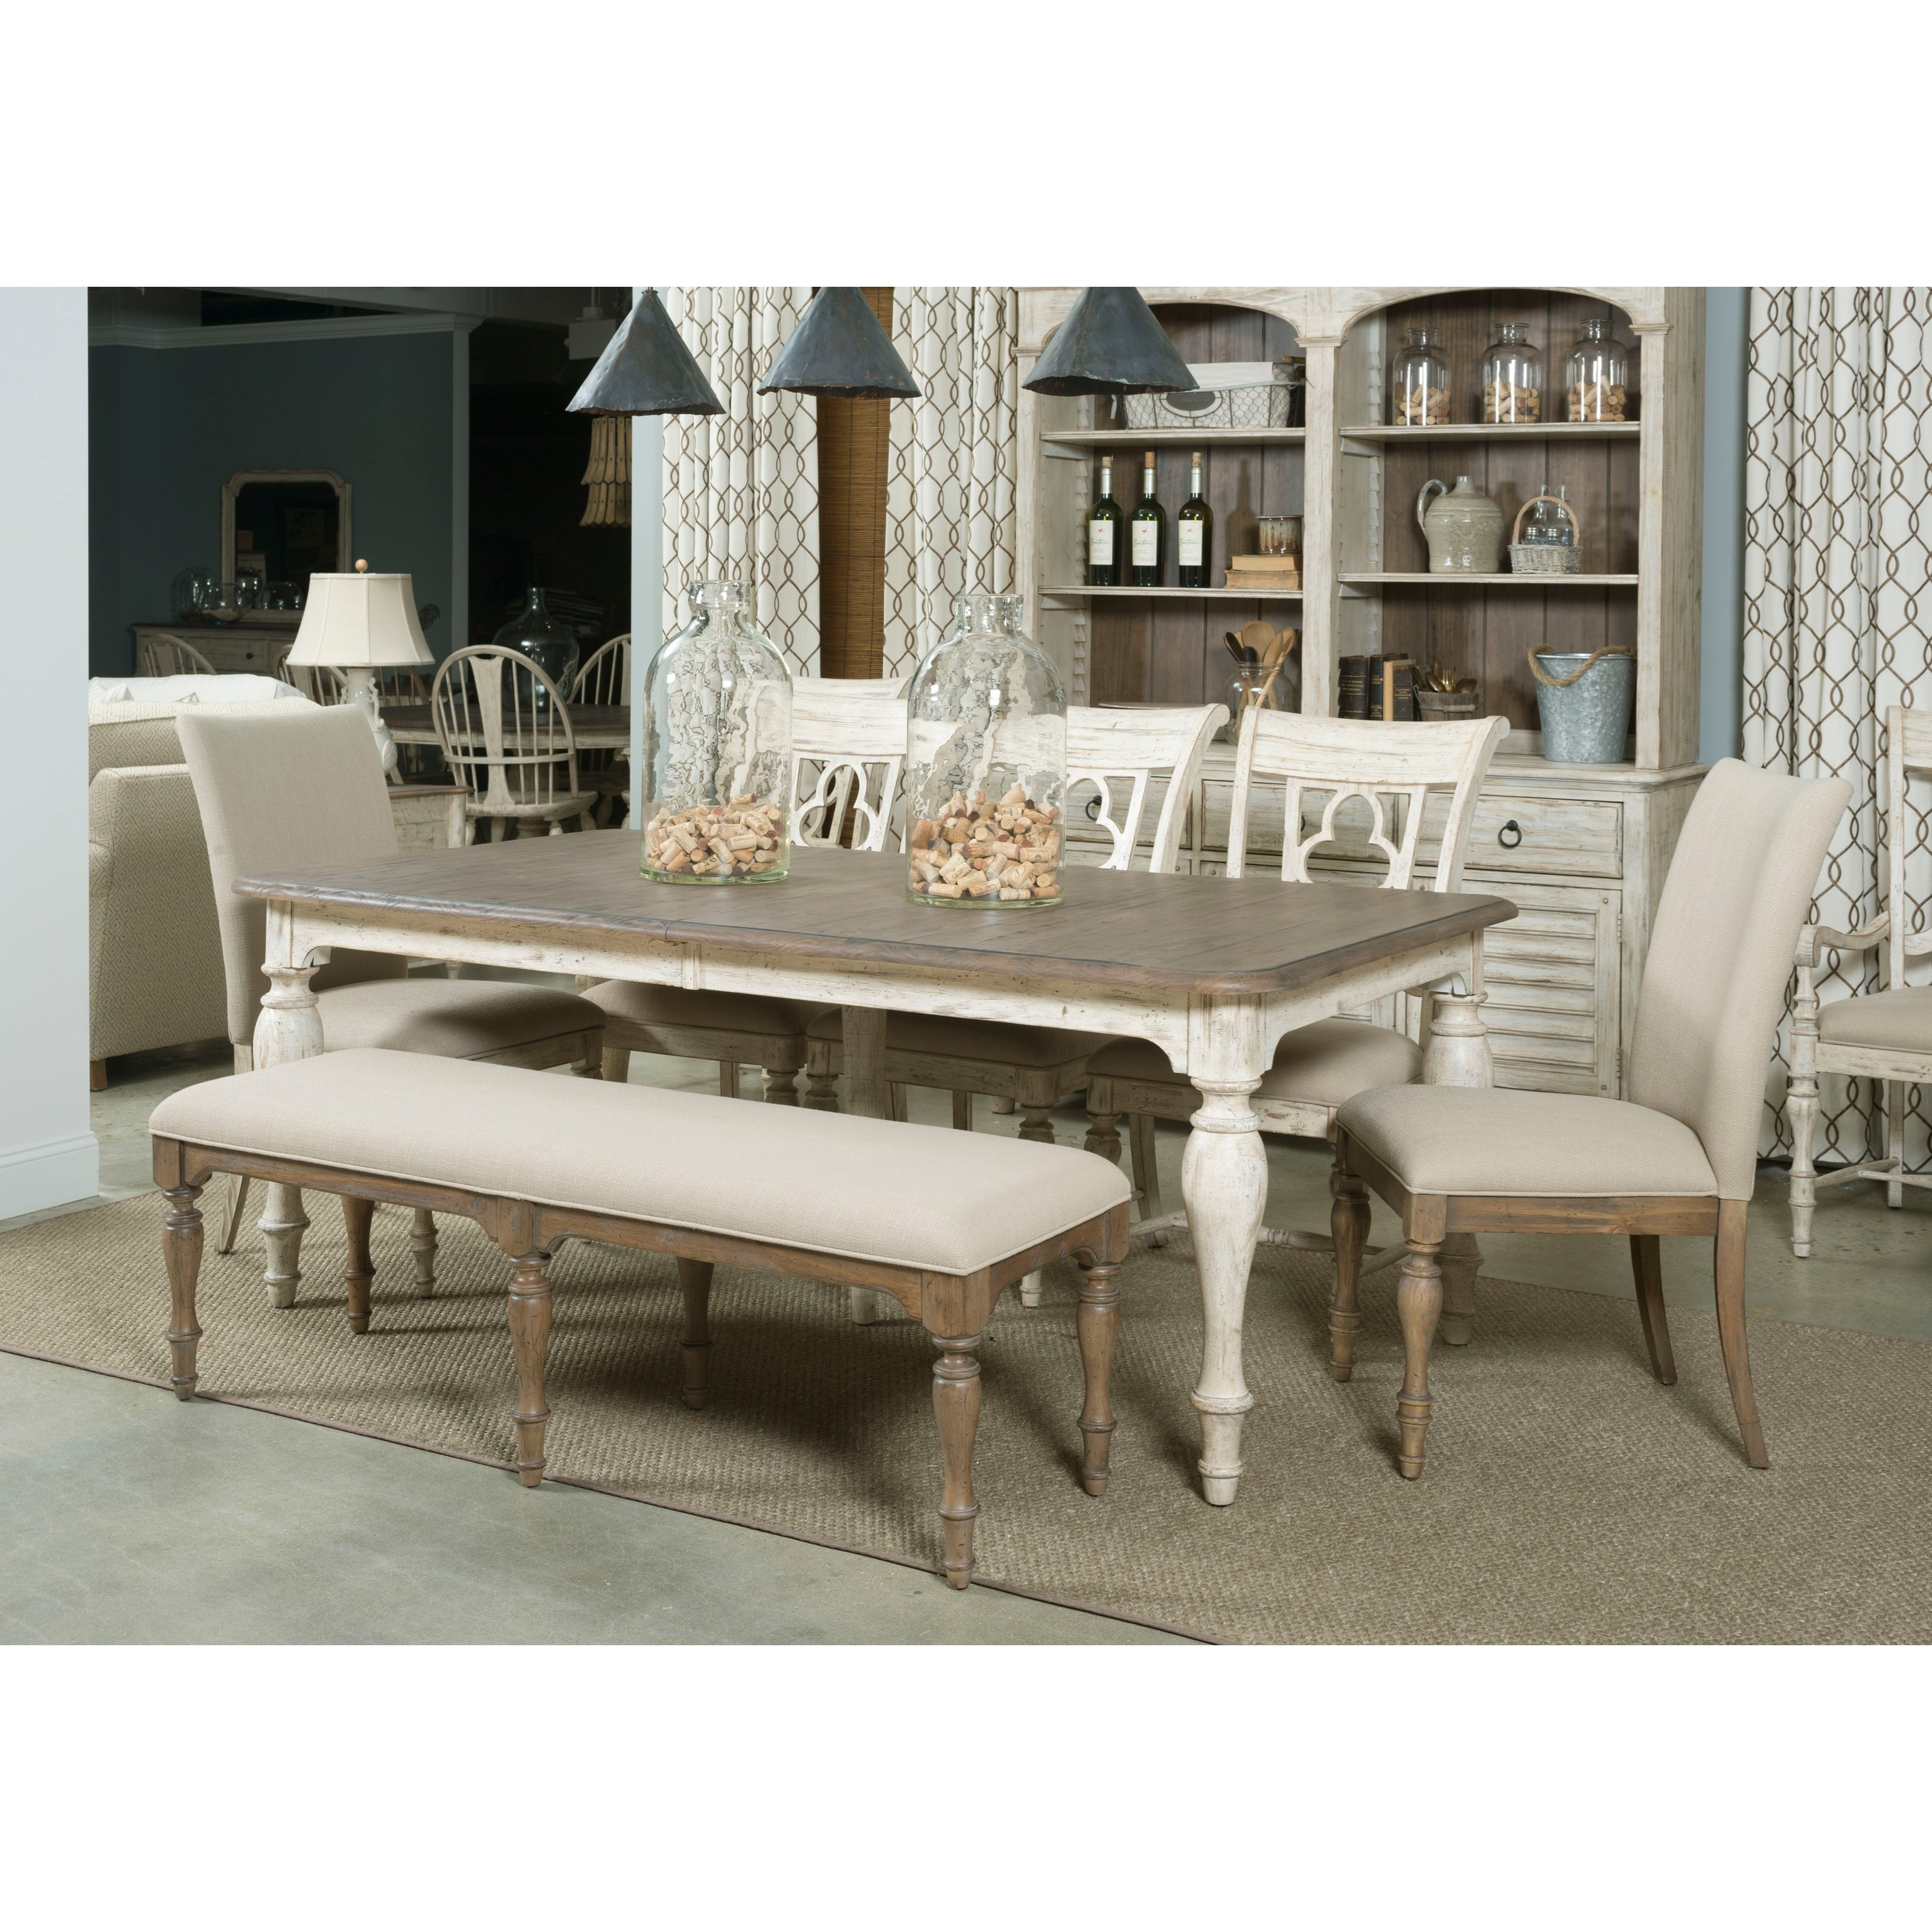 Kincaid Furniture Weatherford Casual Dining Room Group - Item Number: 75 Dining Room Group 5